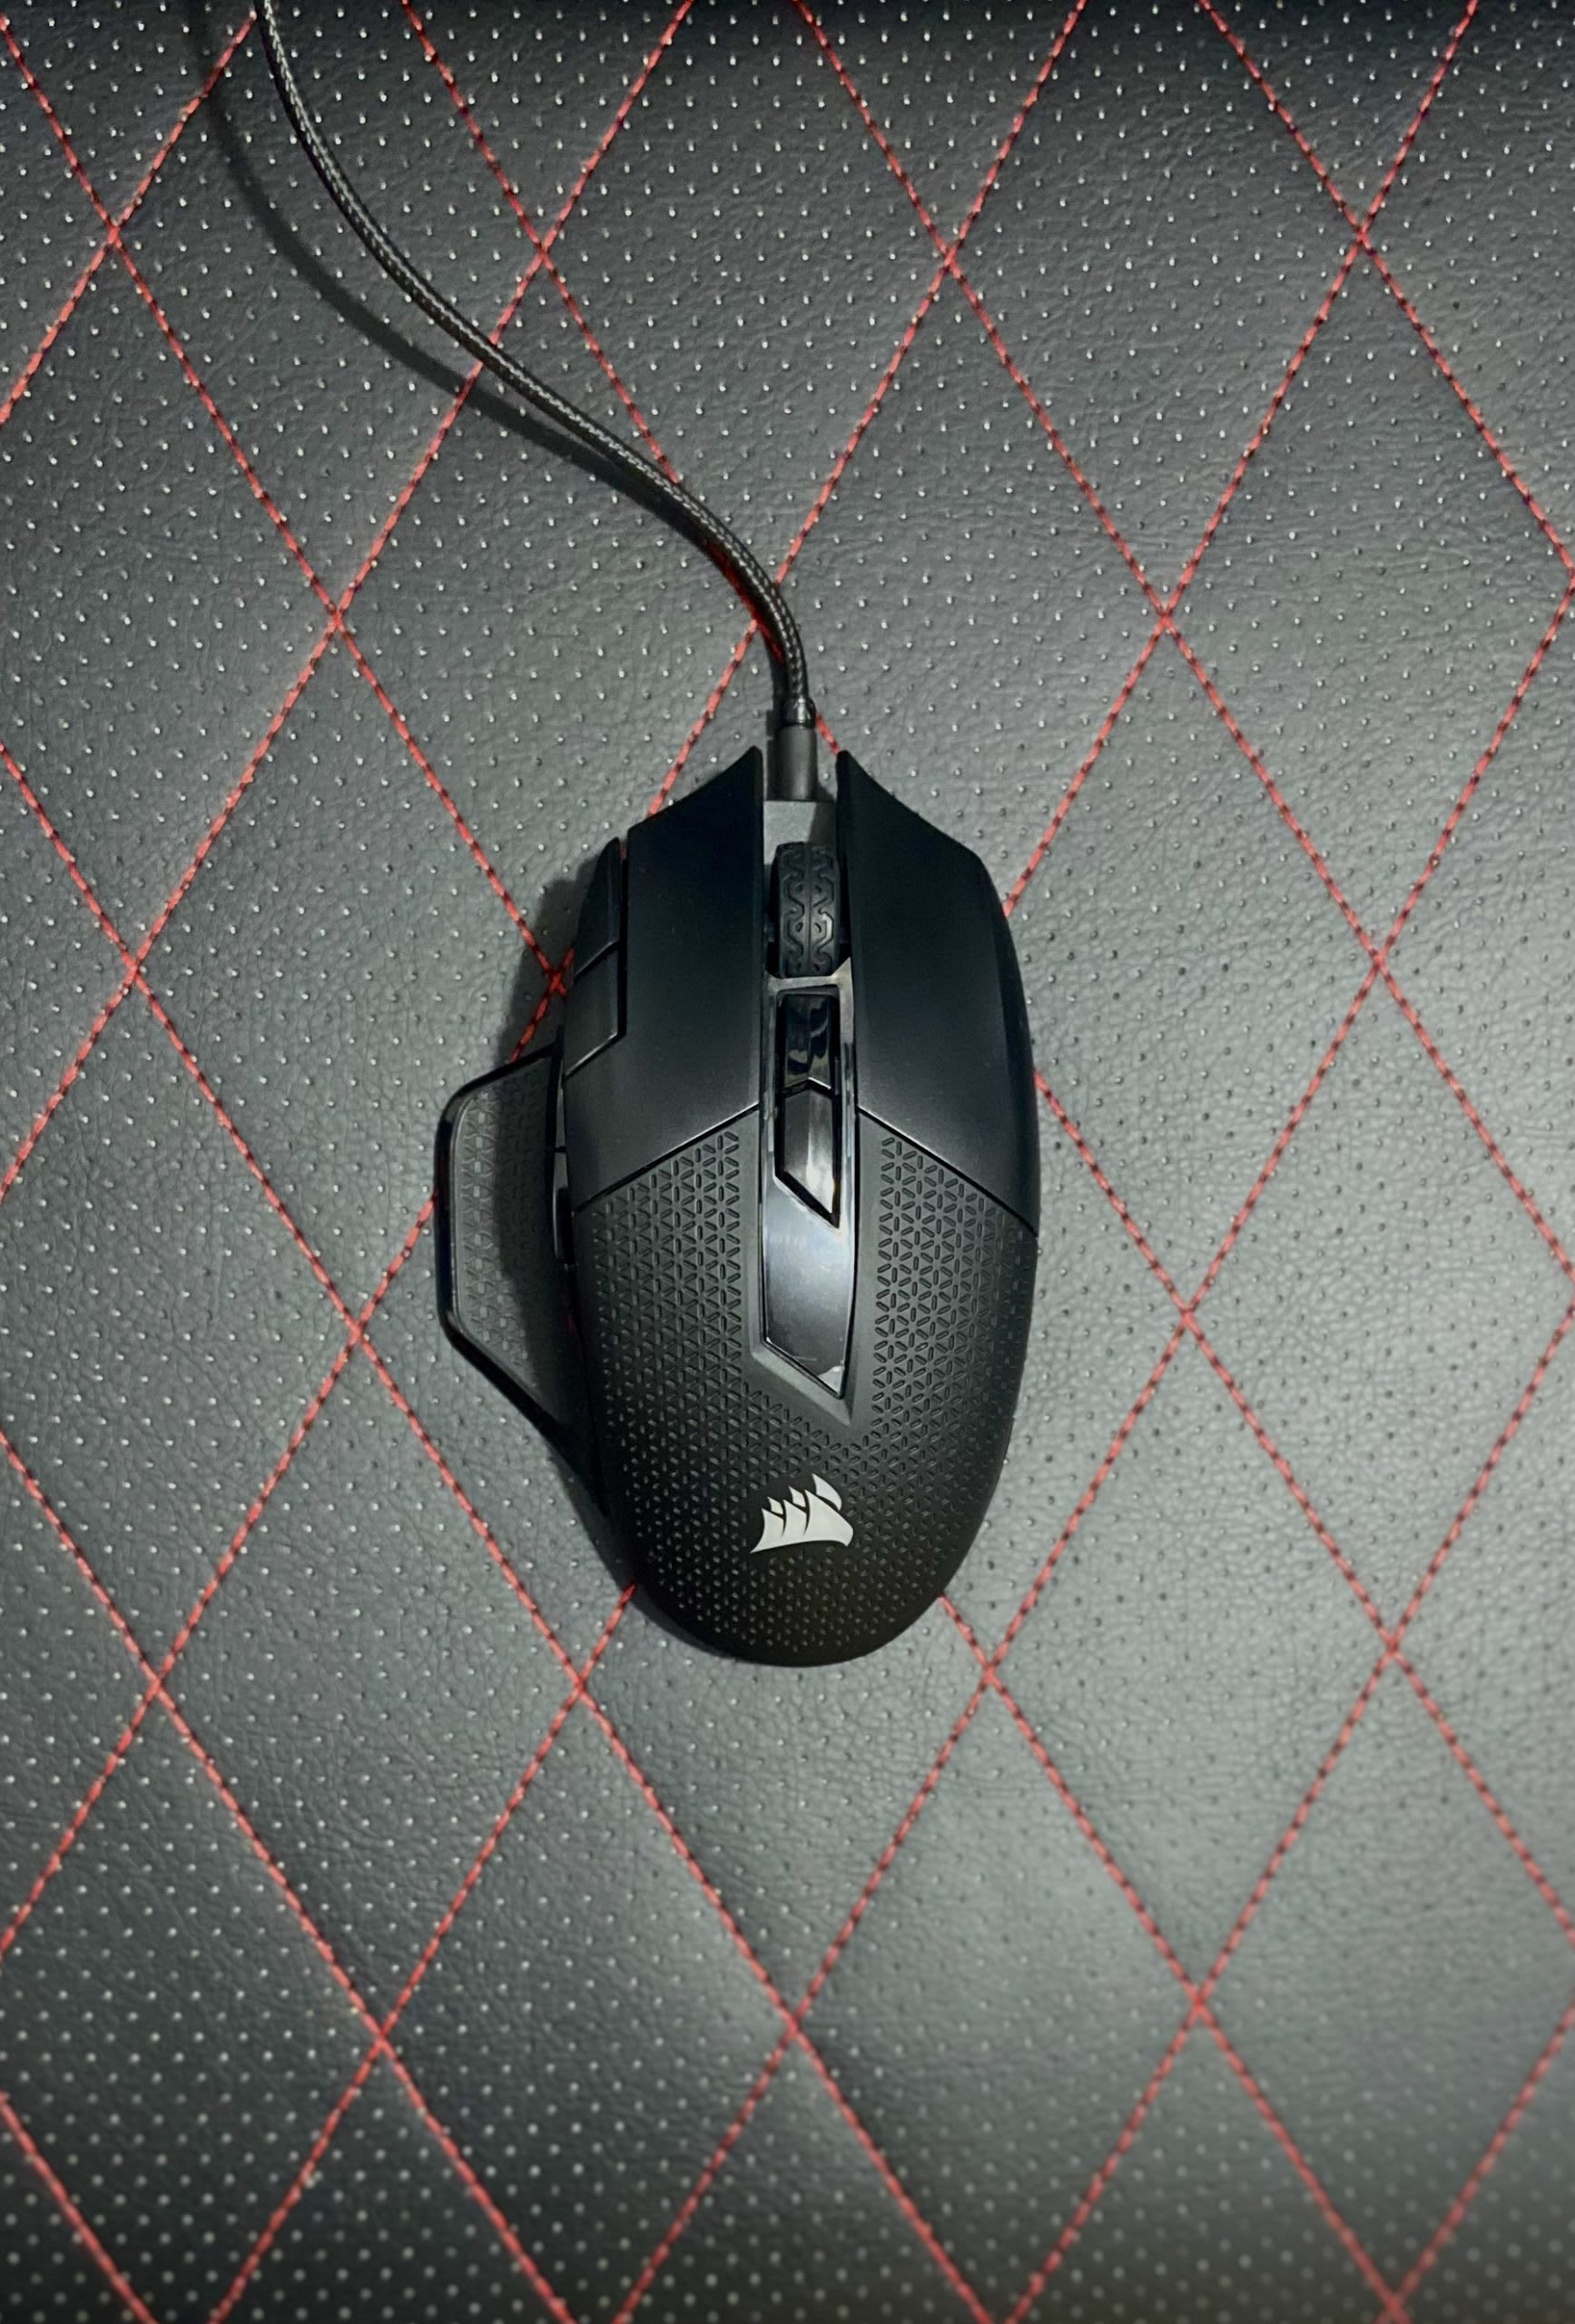 Corsair NightSword RGB Gaming Mouse Review 3